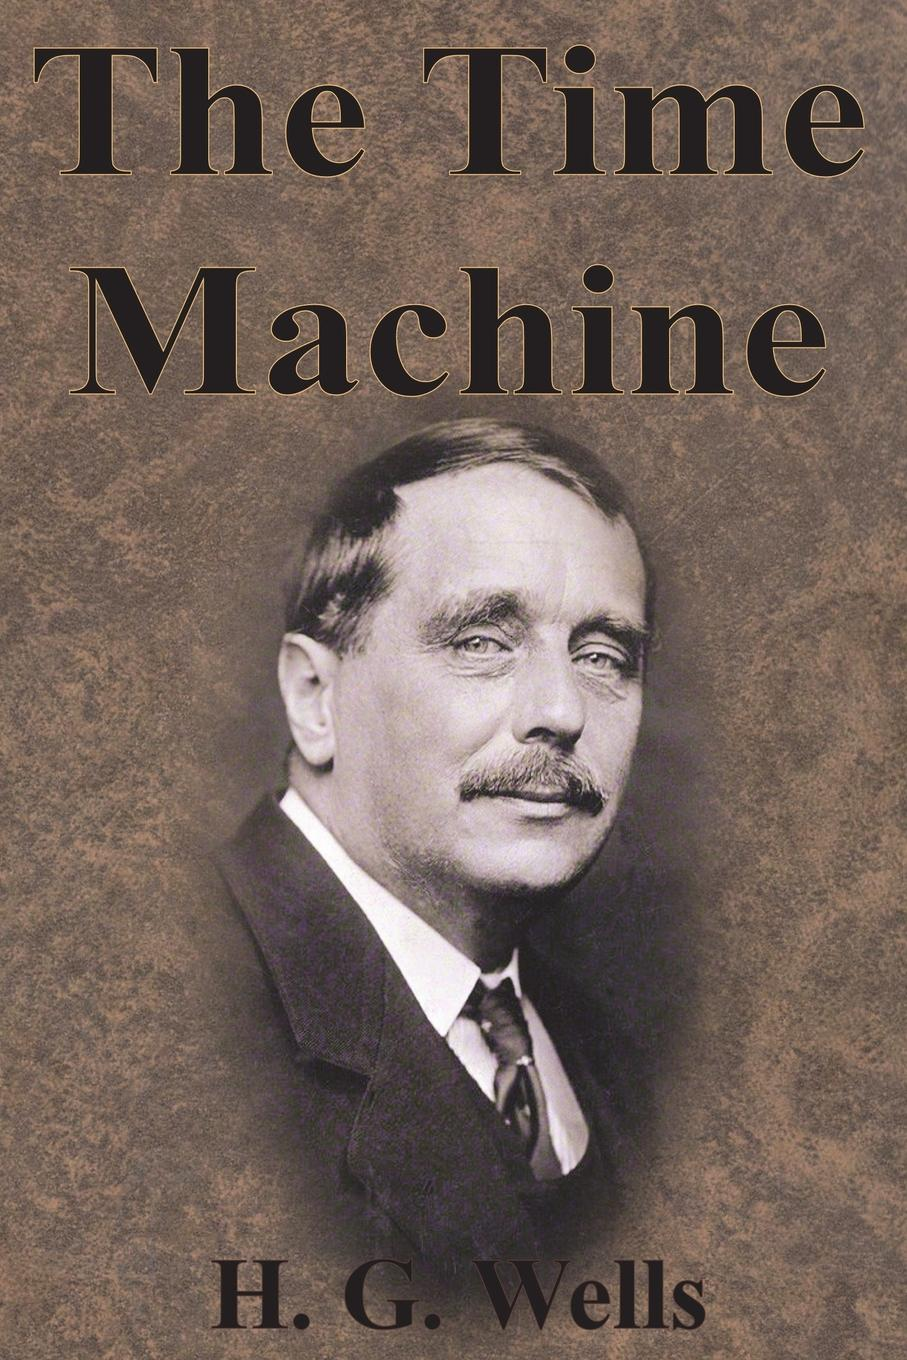 лучшая цена H. G. Wells The Time Machine